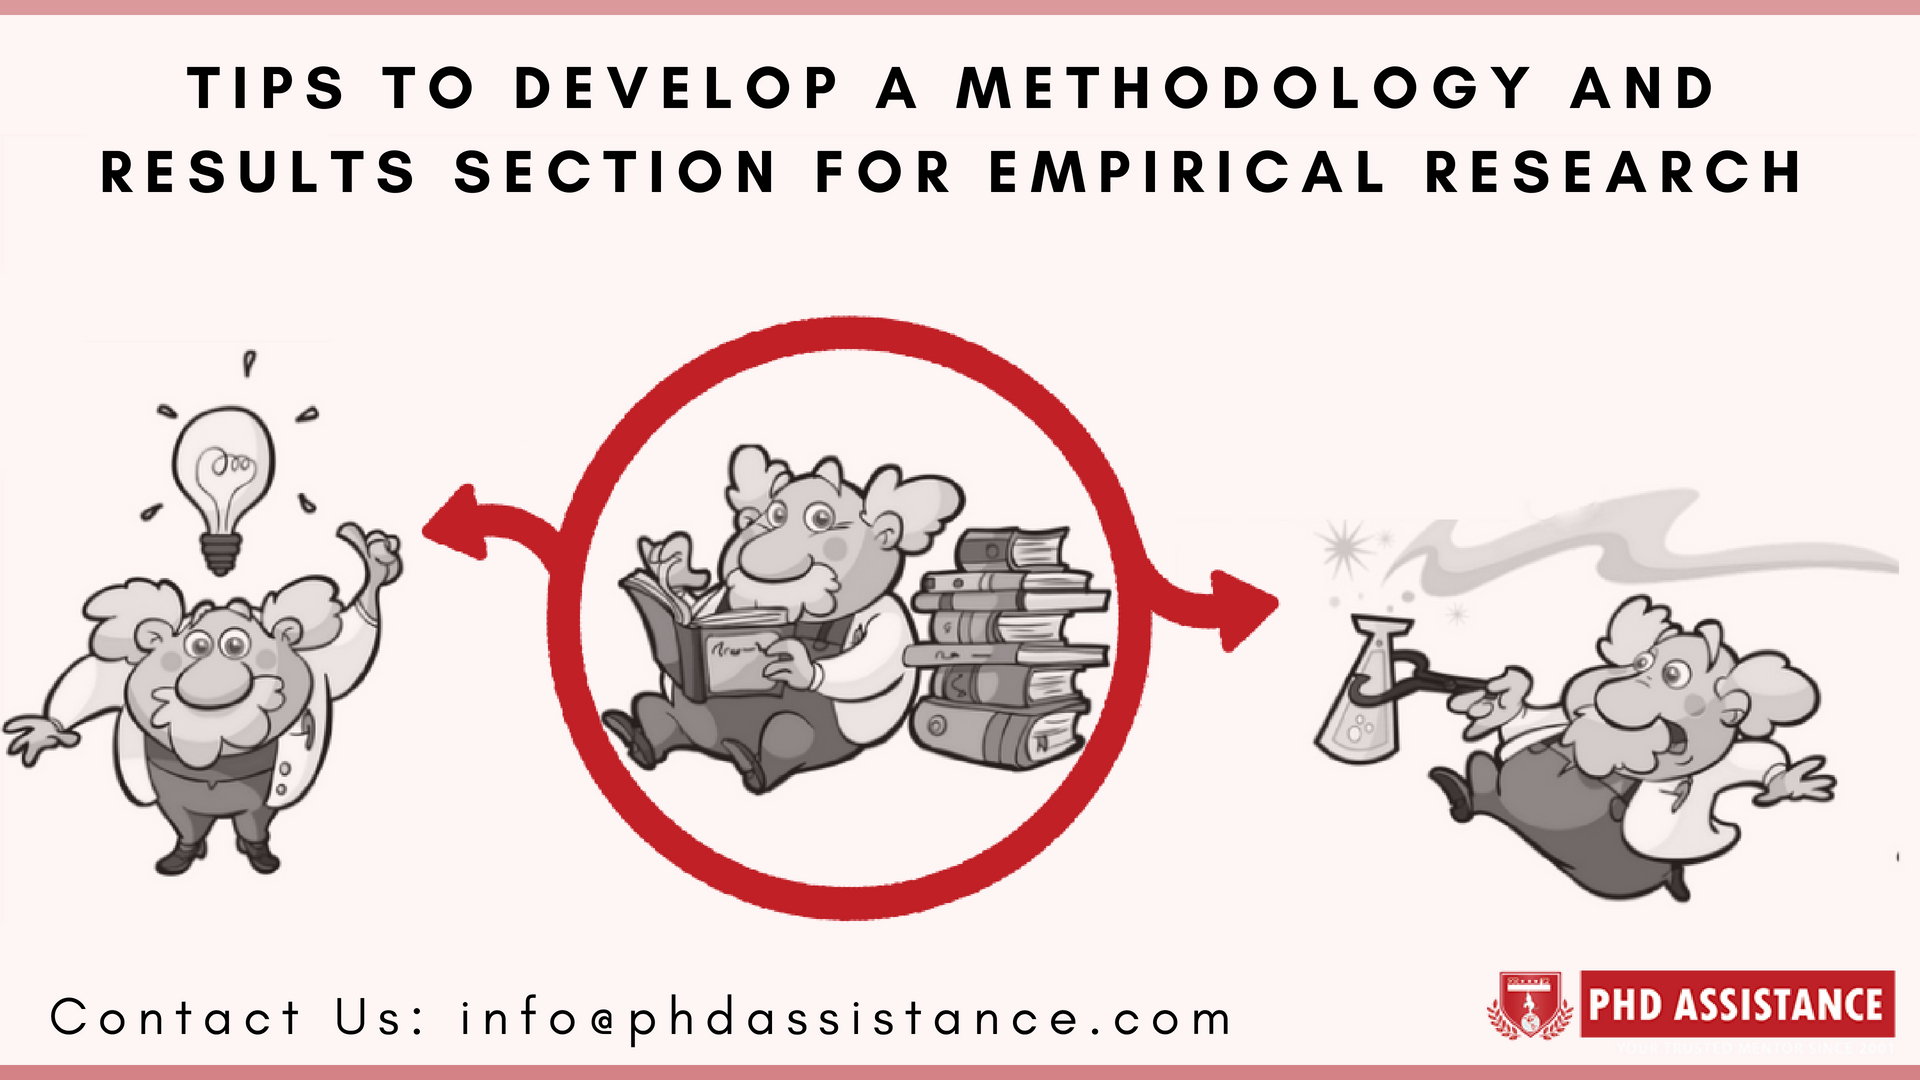 Tips to Develop a Methodology and Results Section for Empirical Research